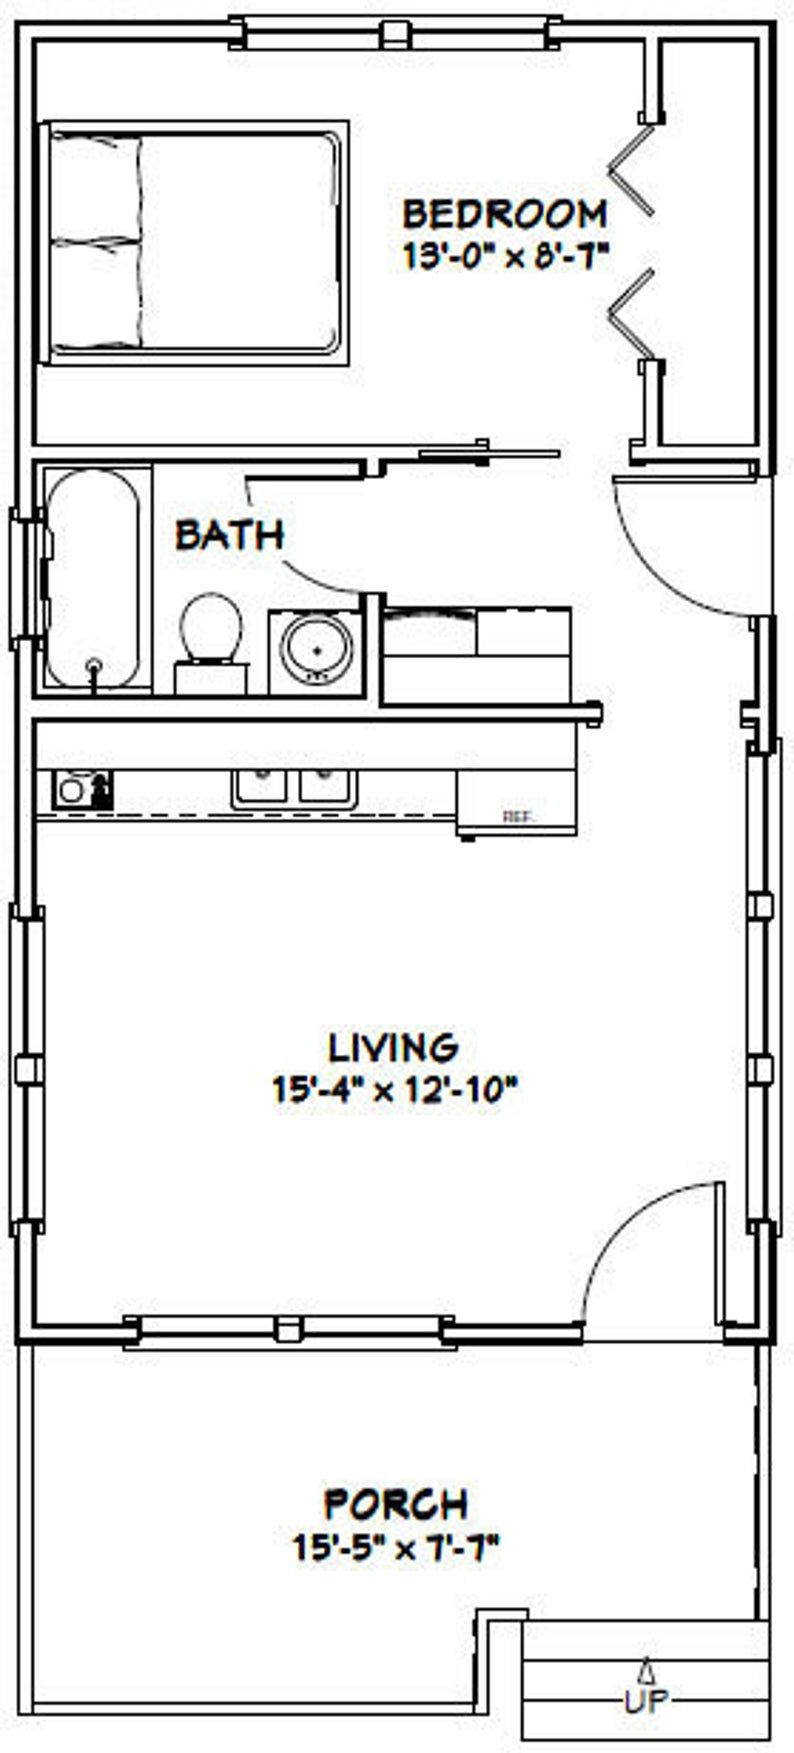 16x28 House 1 Bedroom 1 Bath 447 Sq Ft Pdf Floor Plan Etsy In 2020 Tiny House Floor Plans House Plans Cabin Floor Plans